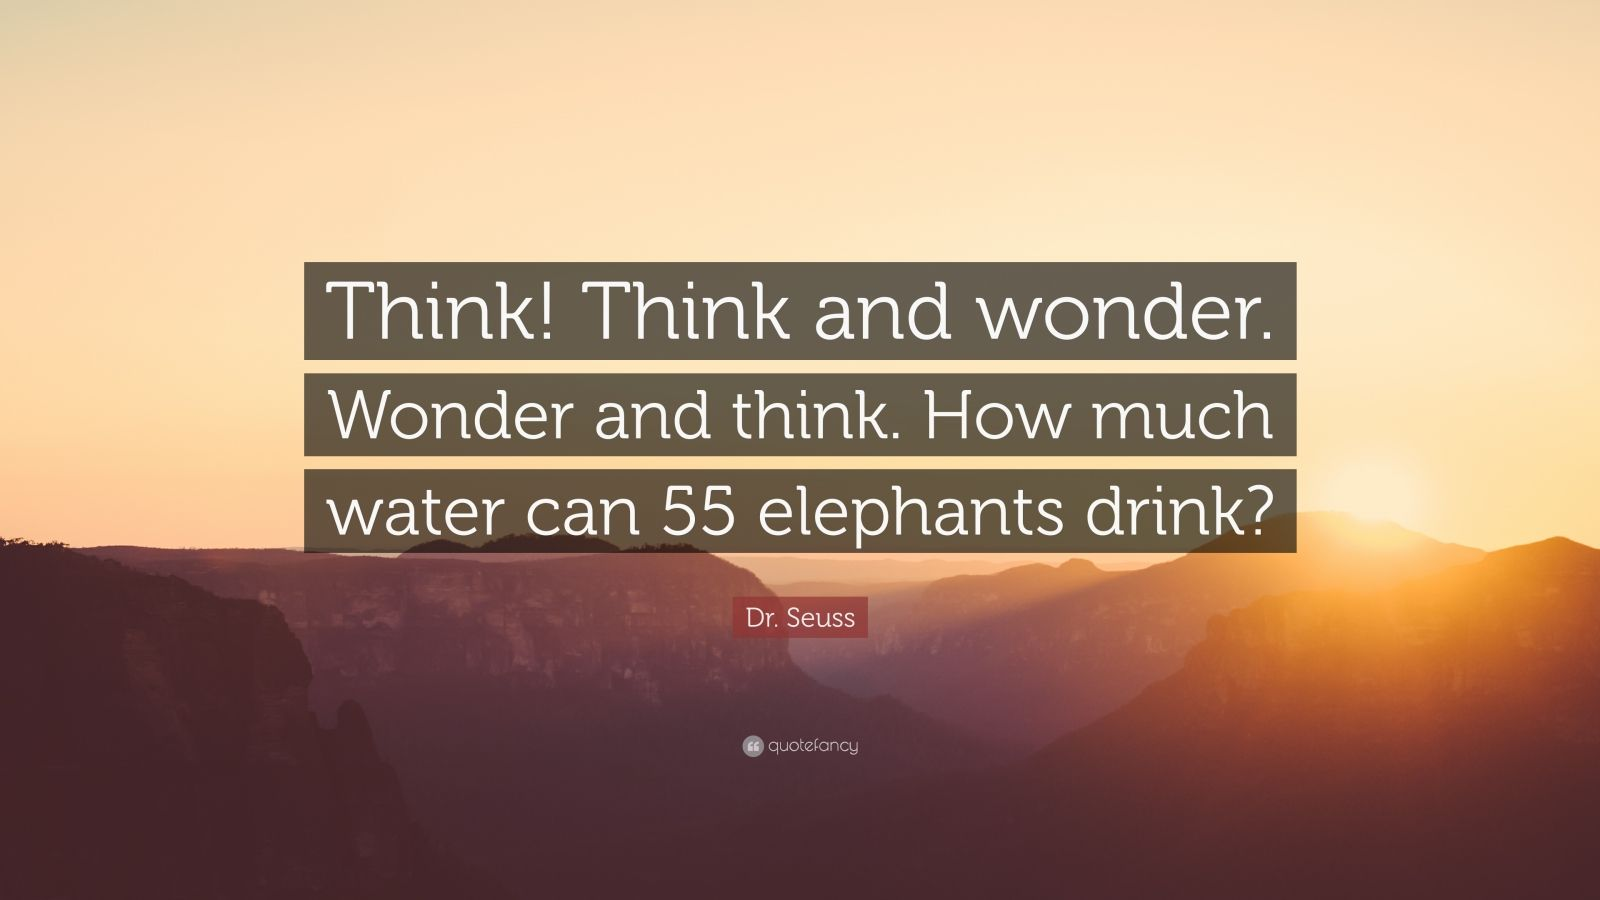 """Dr. Seuss Quote: """"Think! Think and wonder. Wonder and think. How much water can 55 elephants drink?"""""""